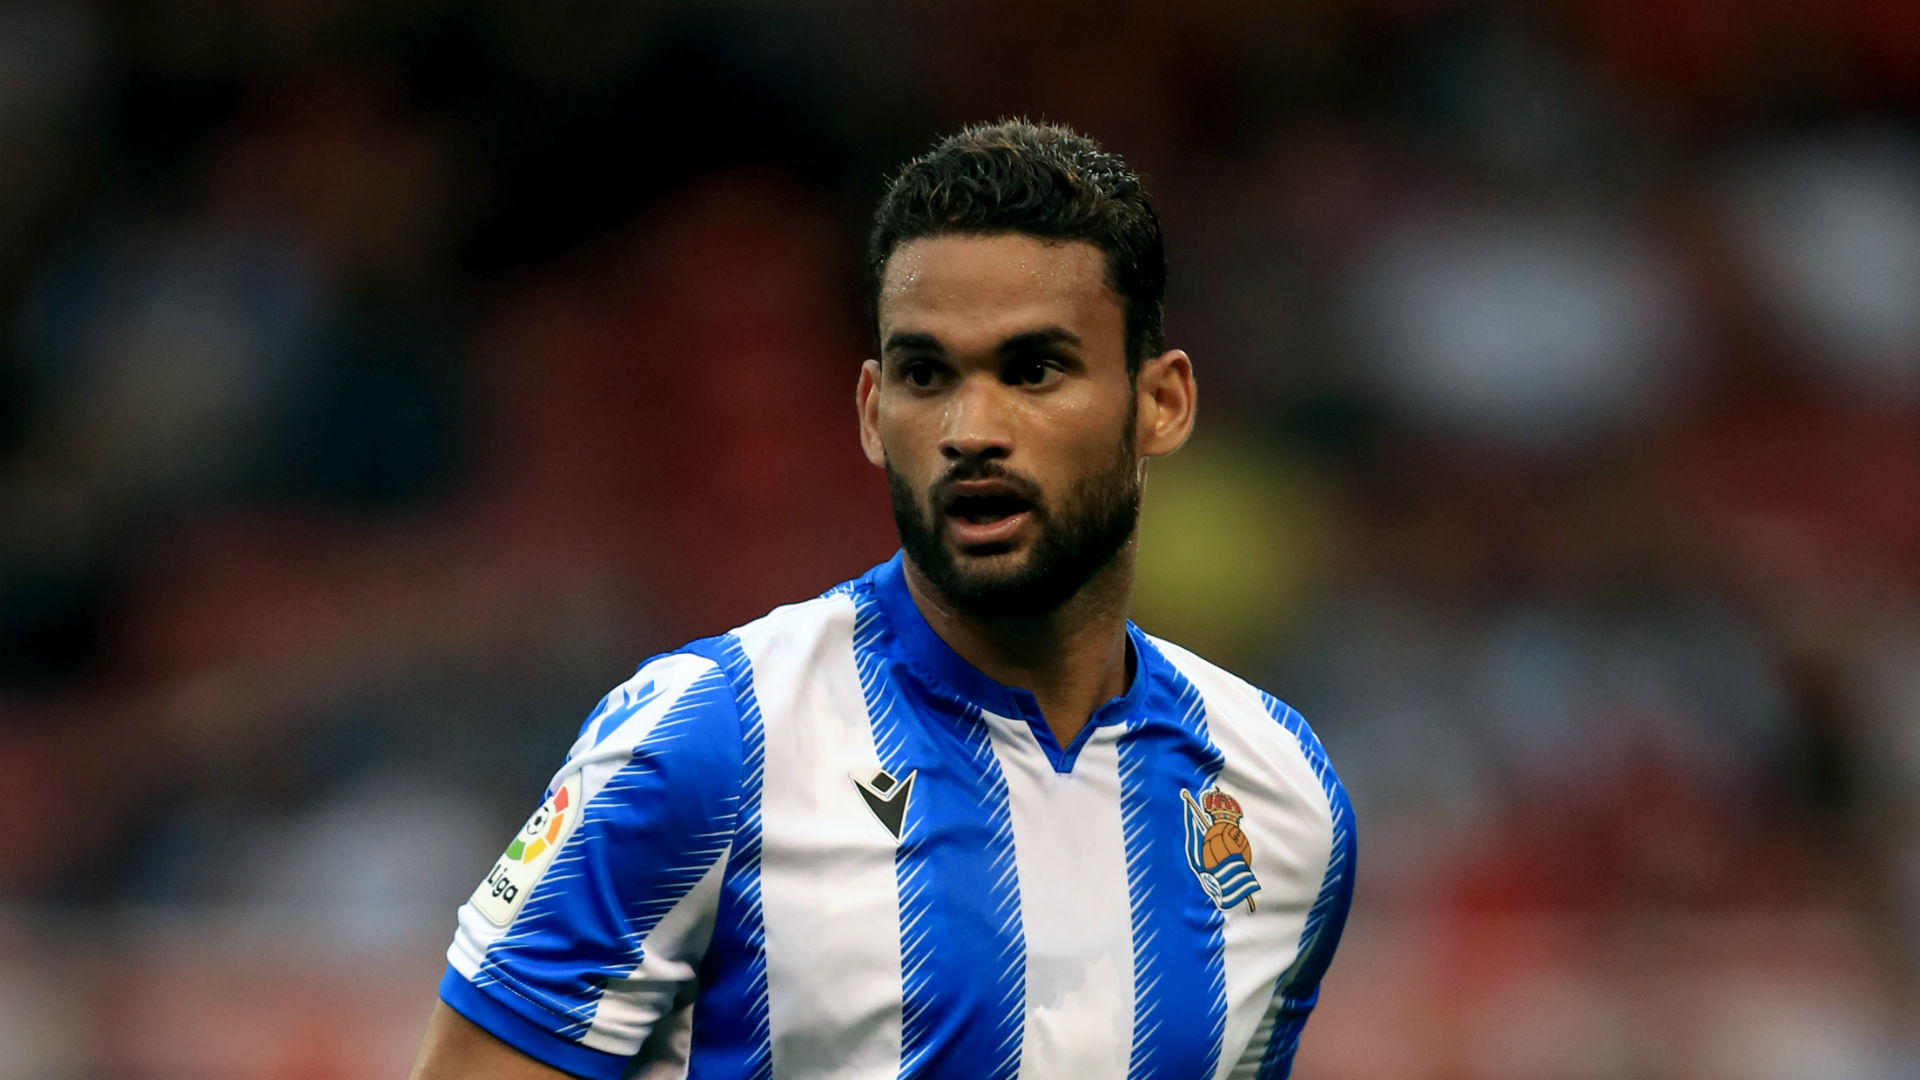 Willian Jose left out by Real Sociedad amid Tottenham rumours